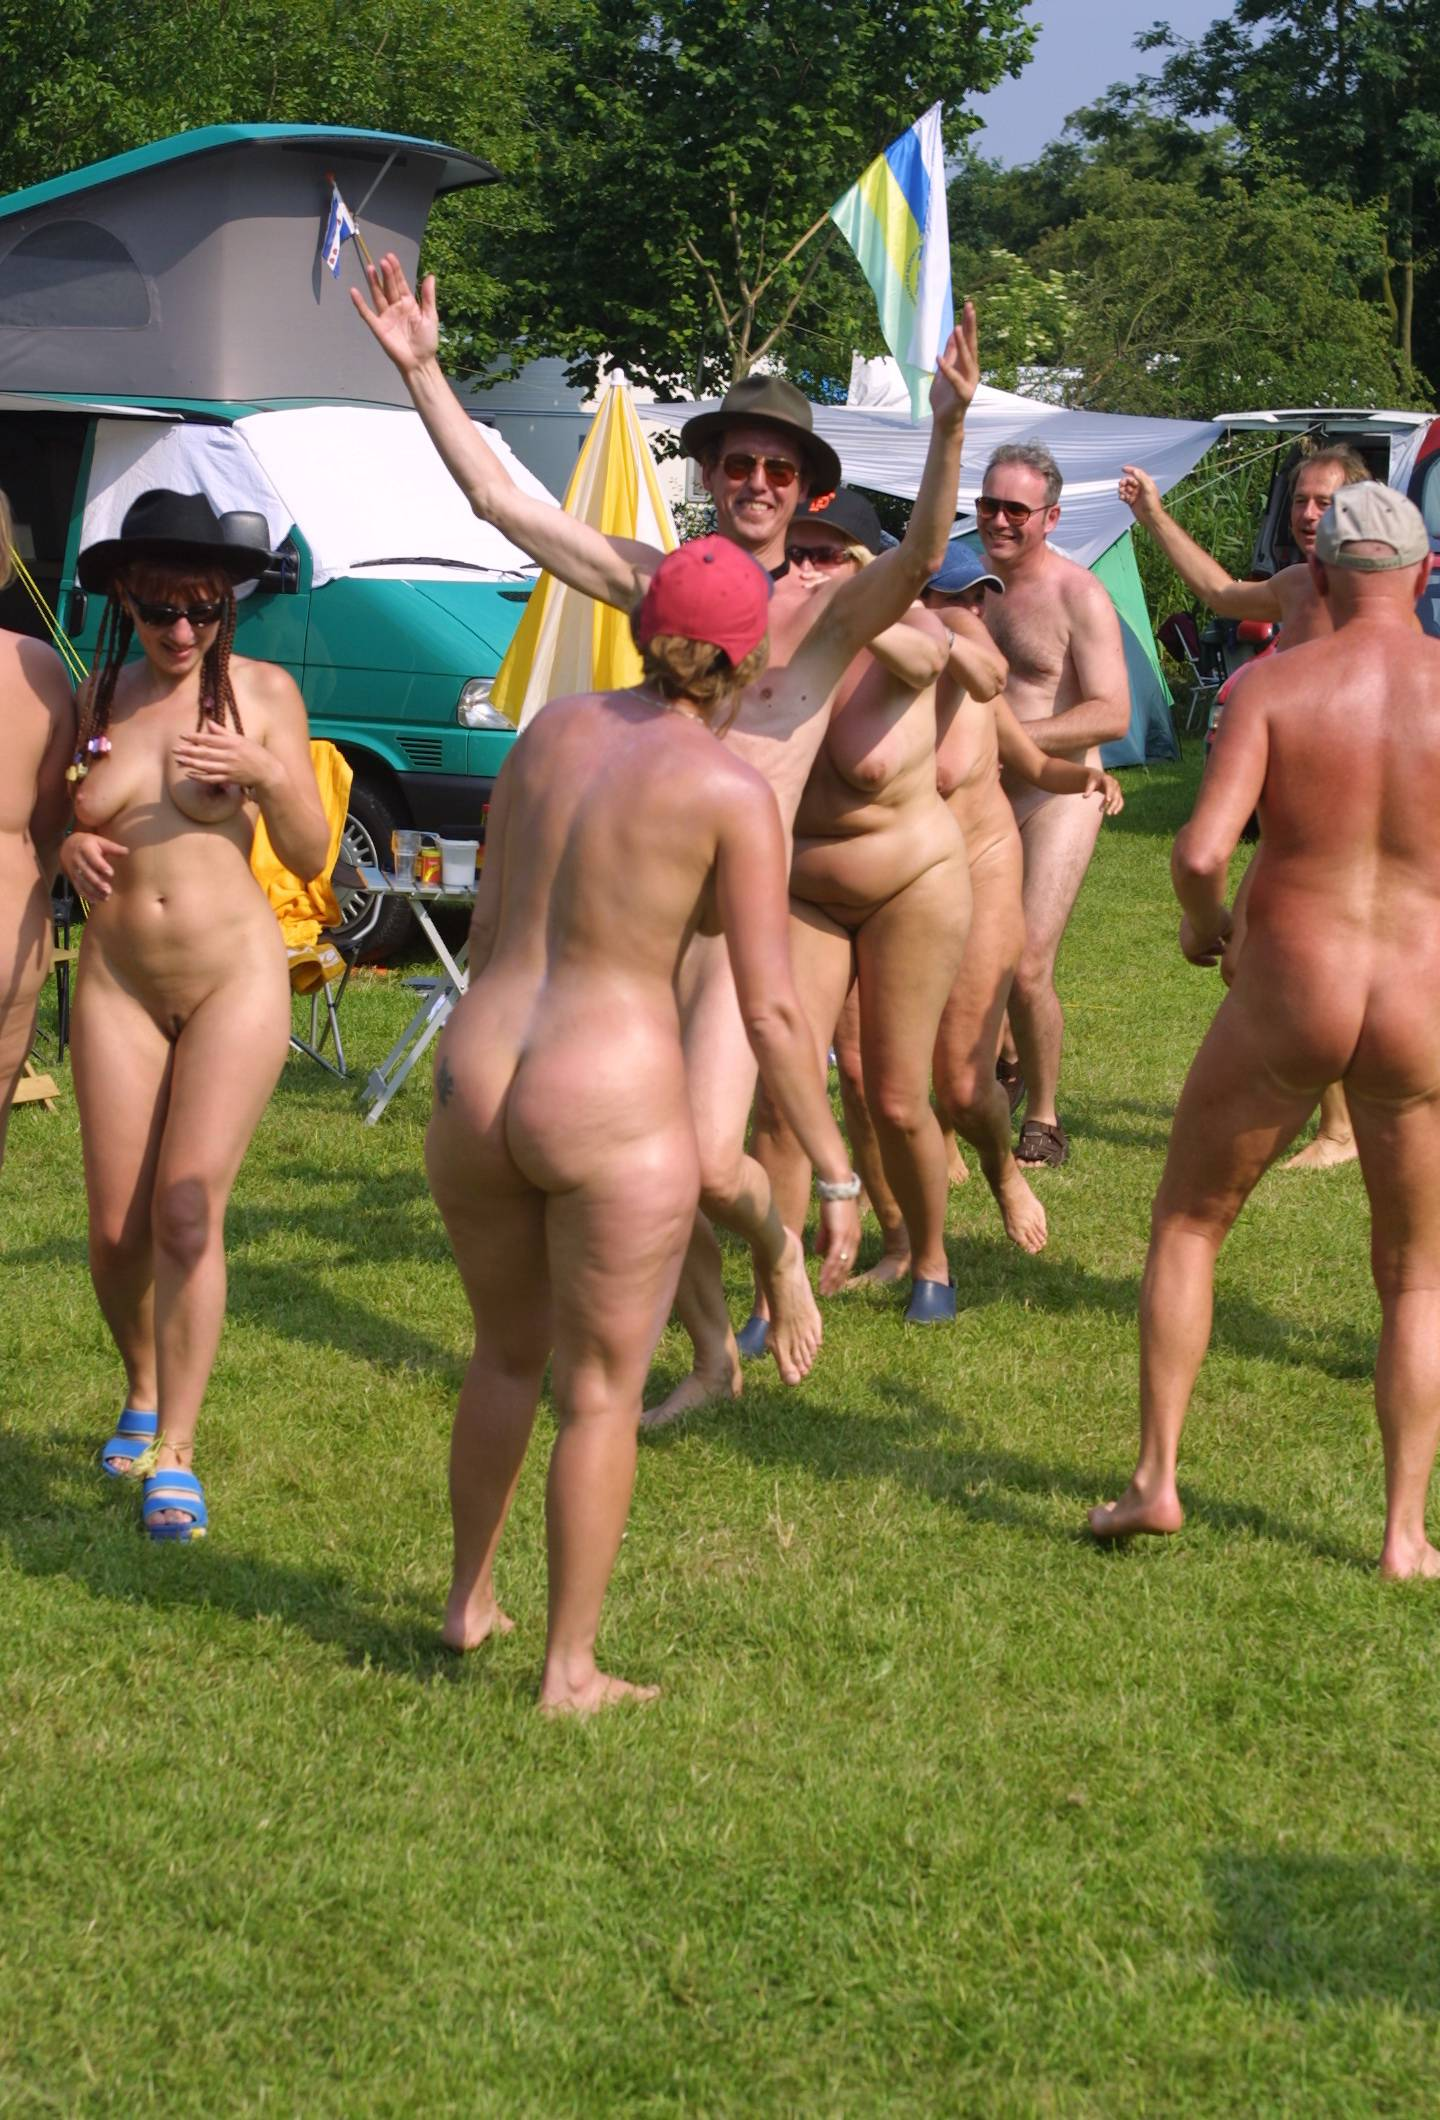 Holland Nude Group Photo - 2